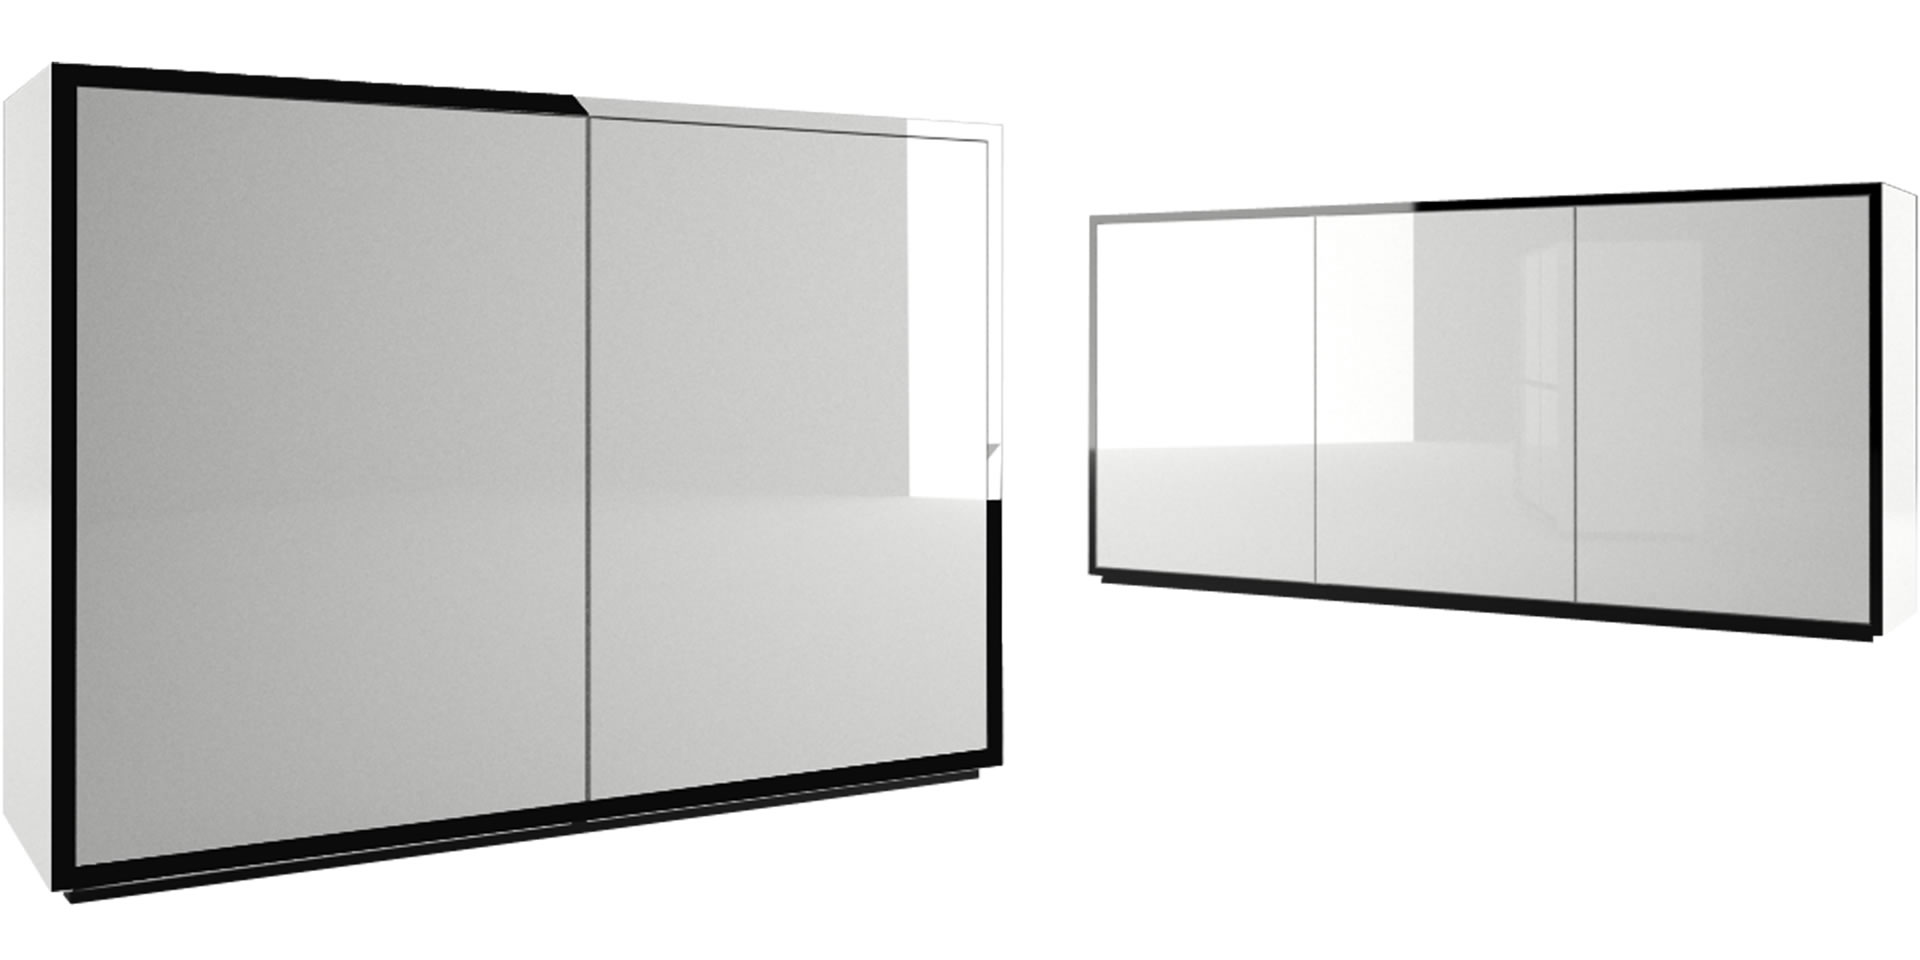 Highboard auxiliator elegantes design highboard von rechteck for Kommode 140 x 100